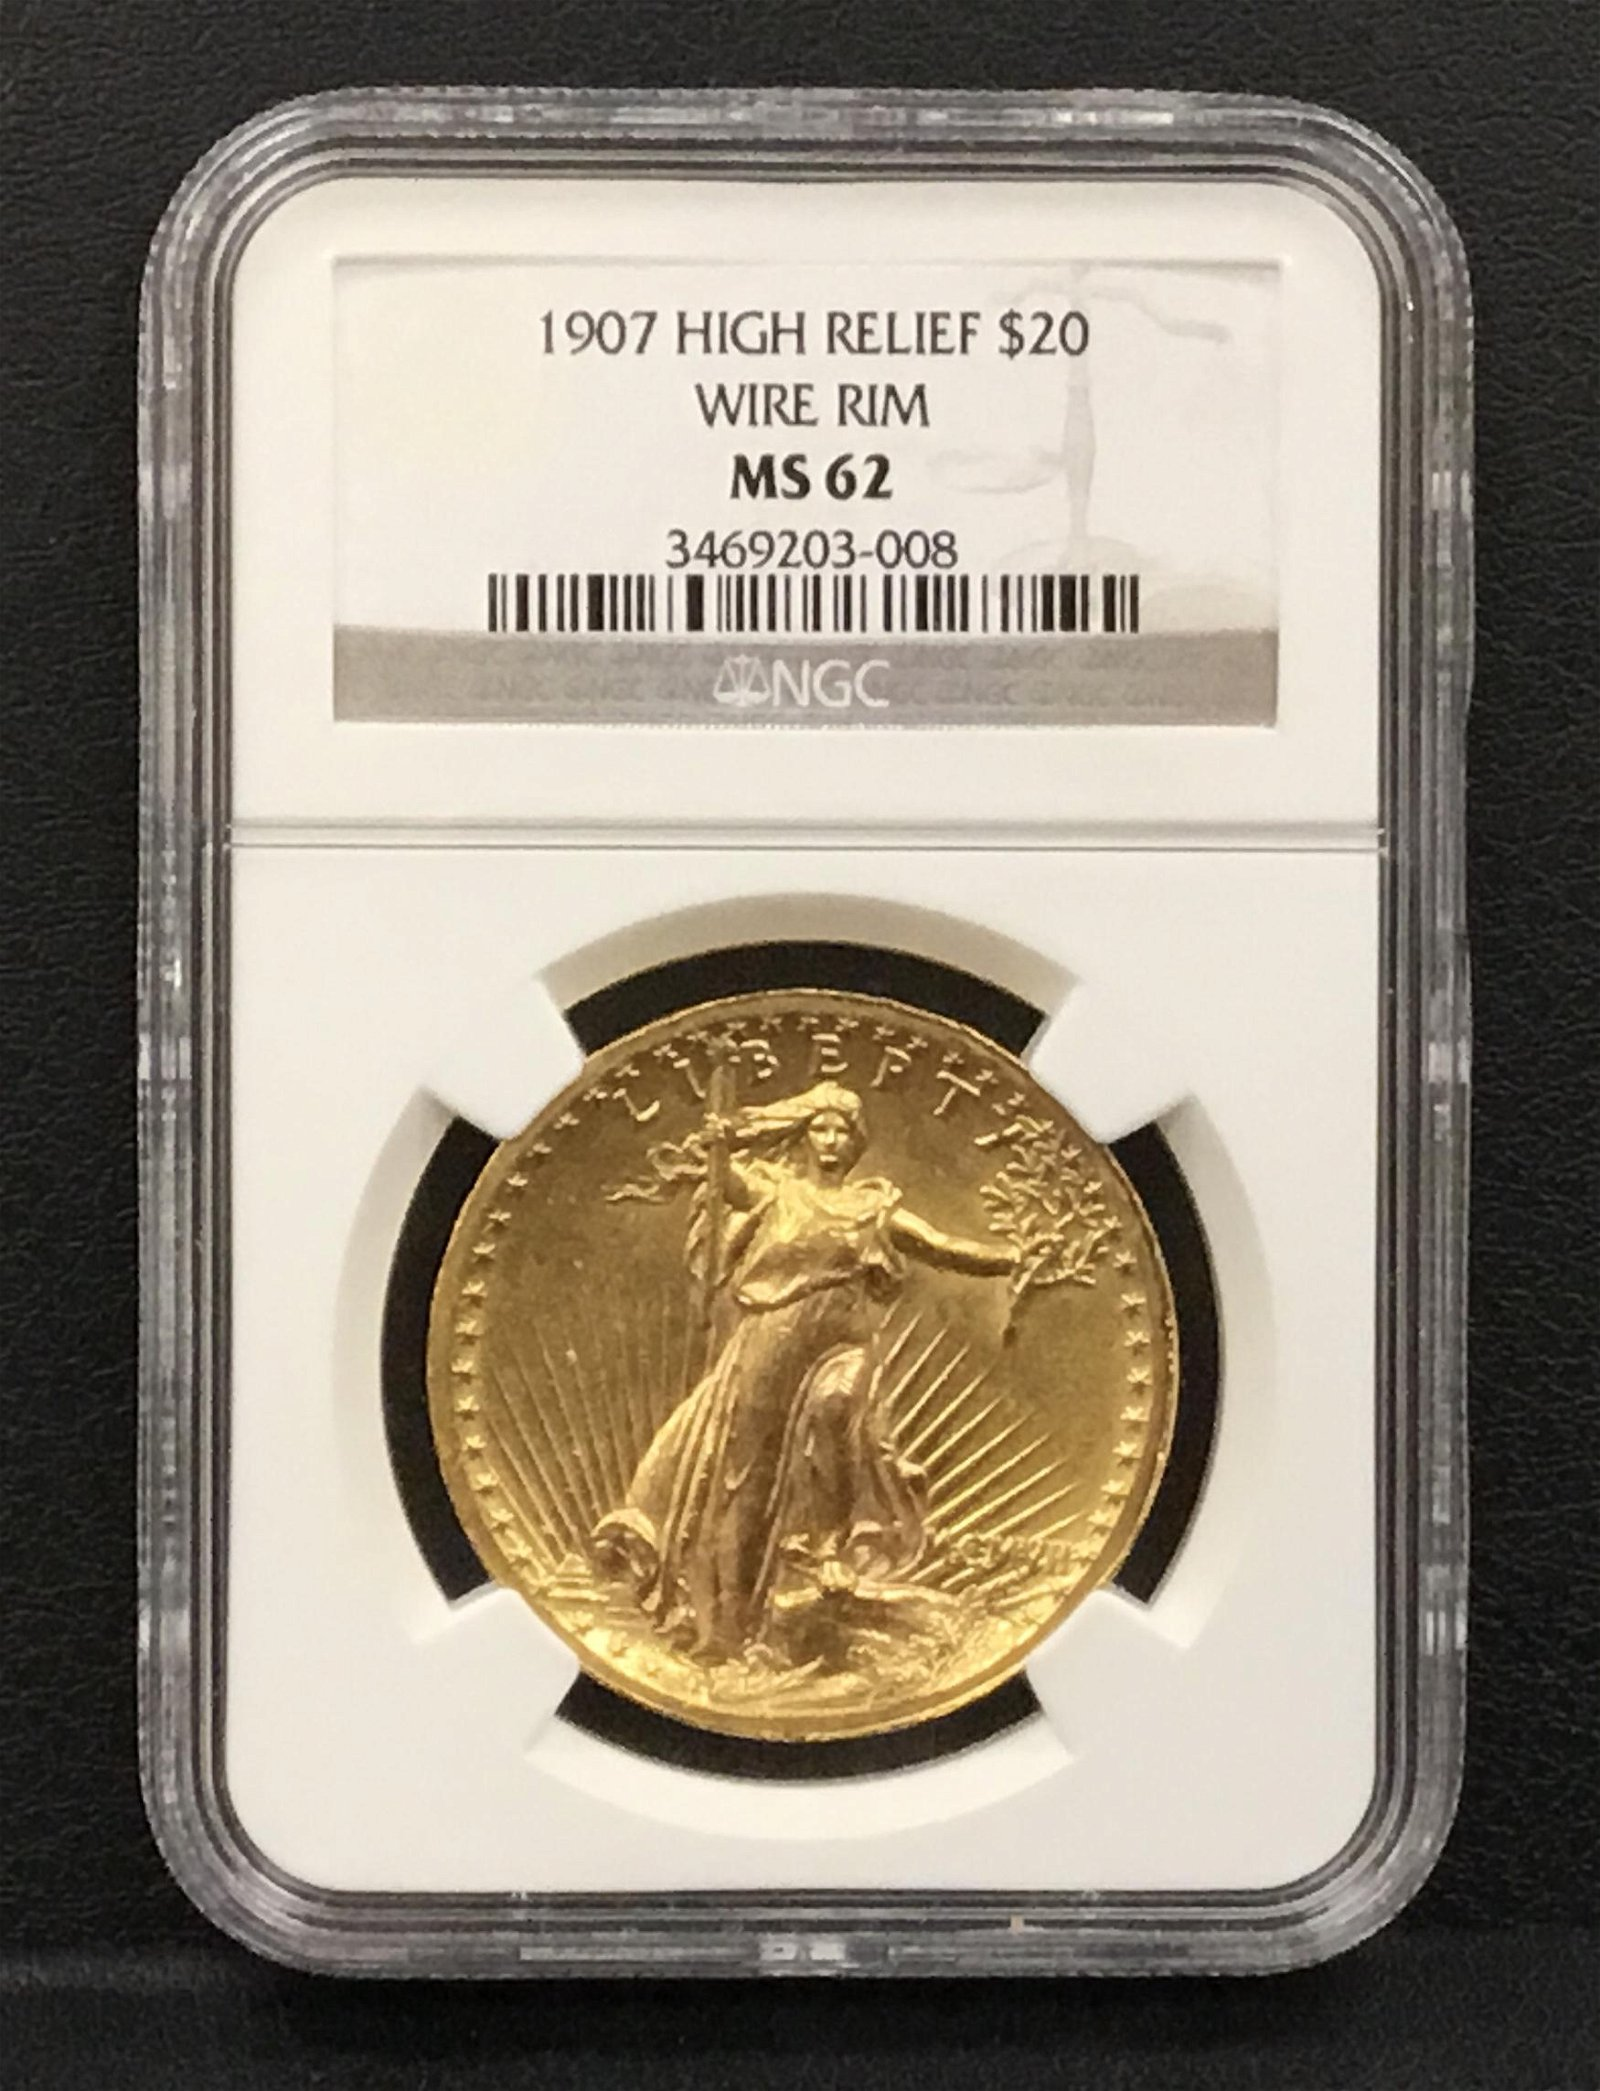 1907 High Relief $20 Gold Coin with Wire Rim